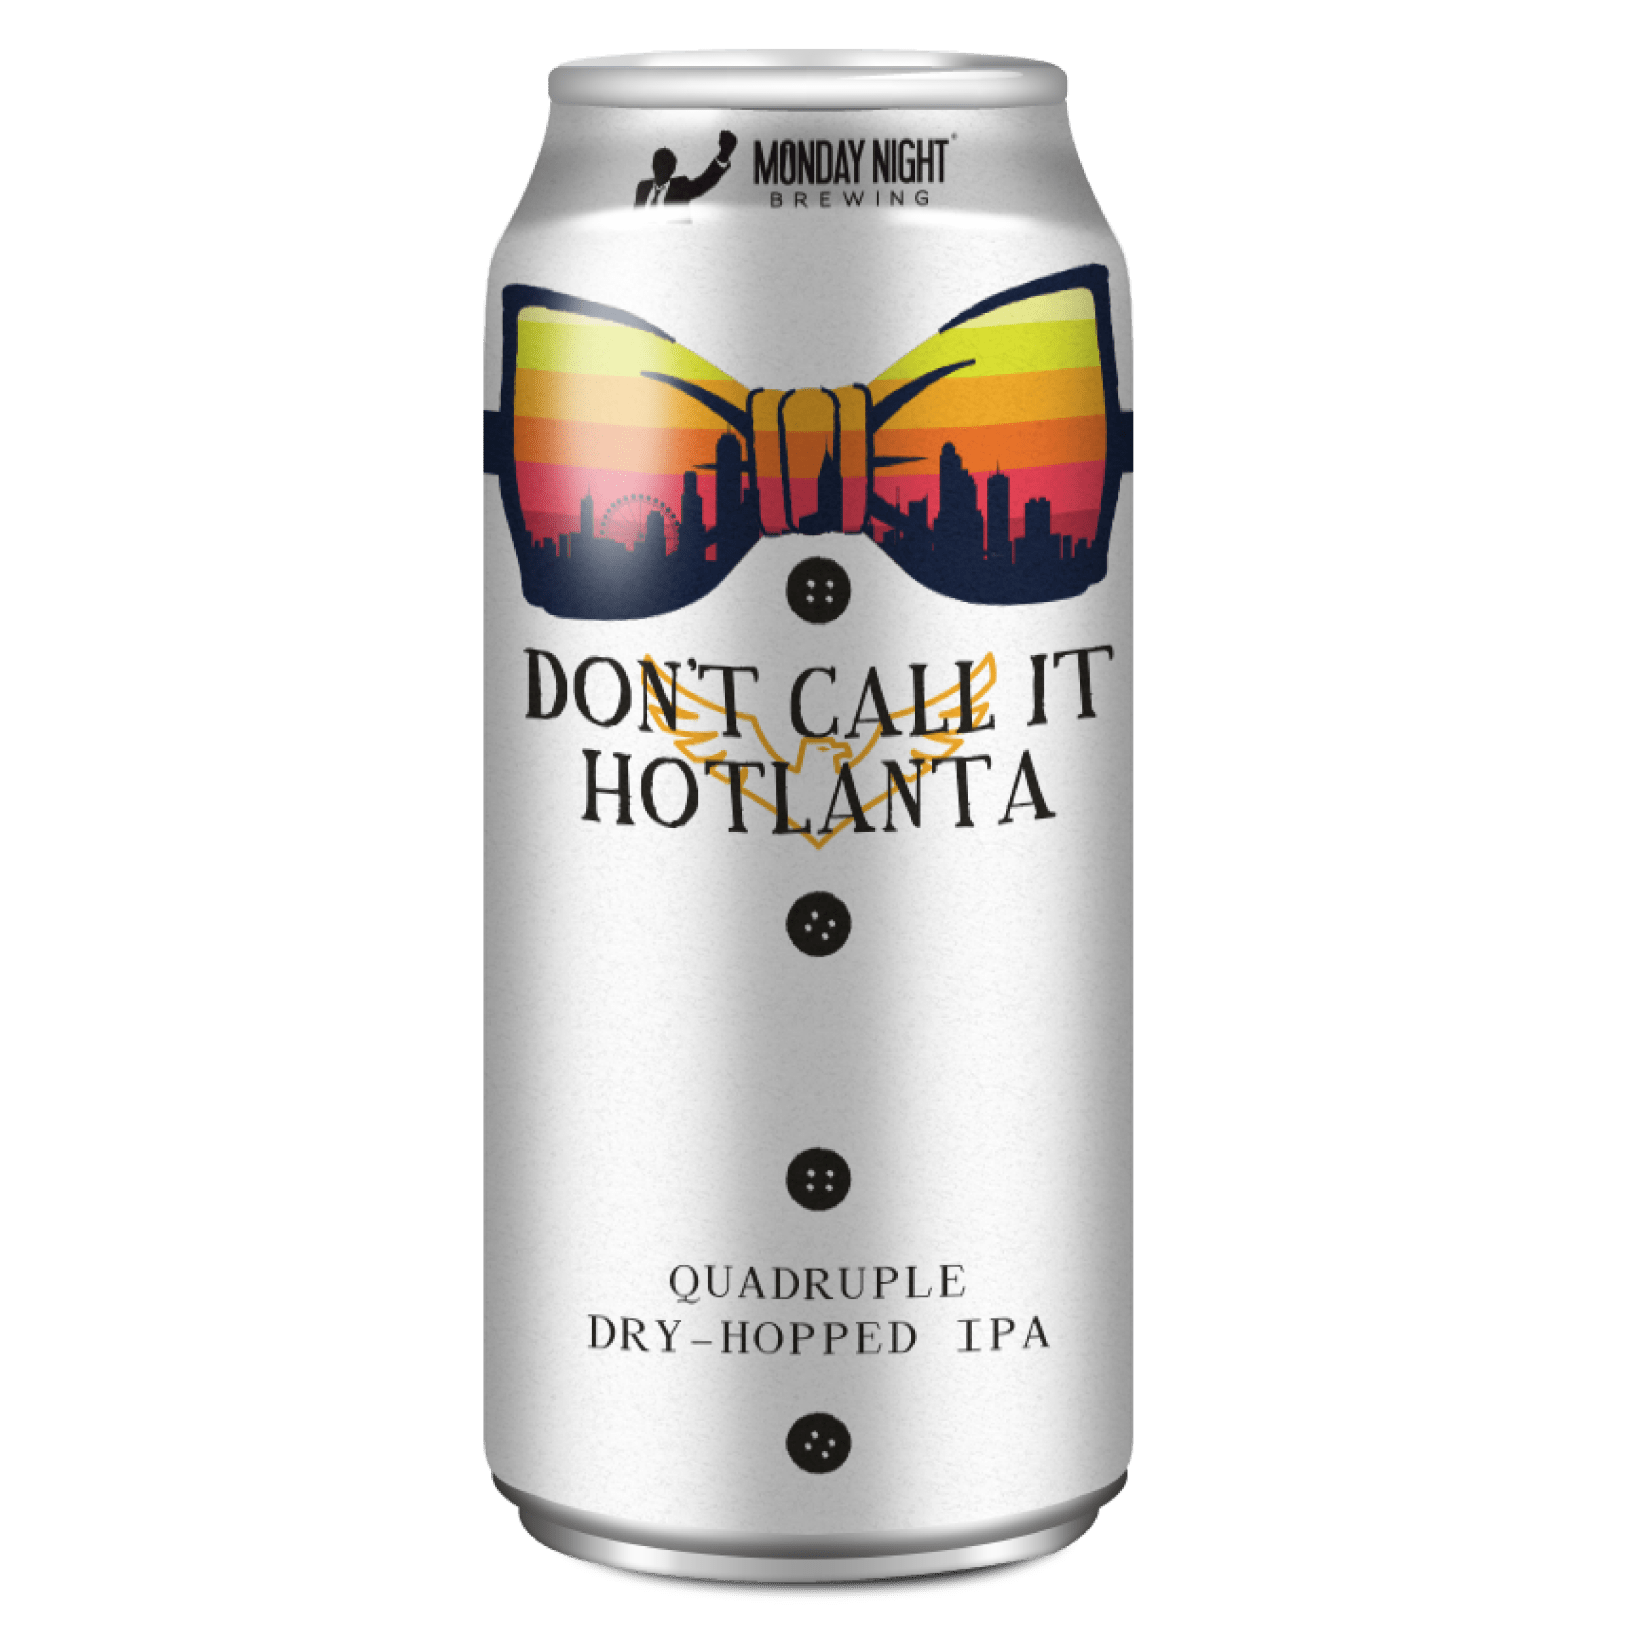 Don't Call It Hotlanta